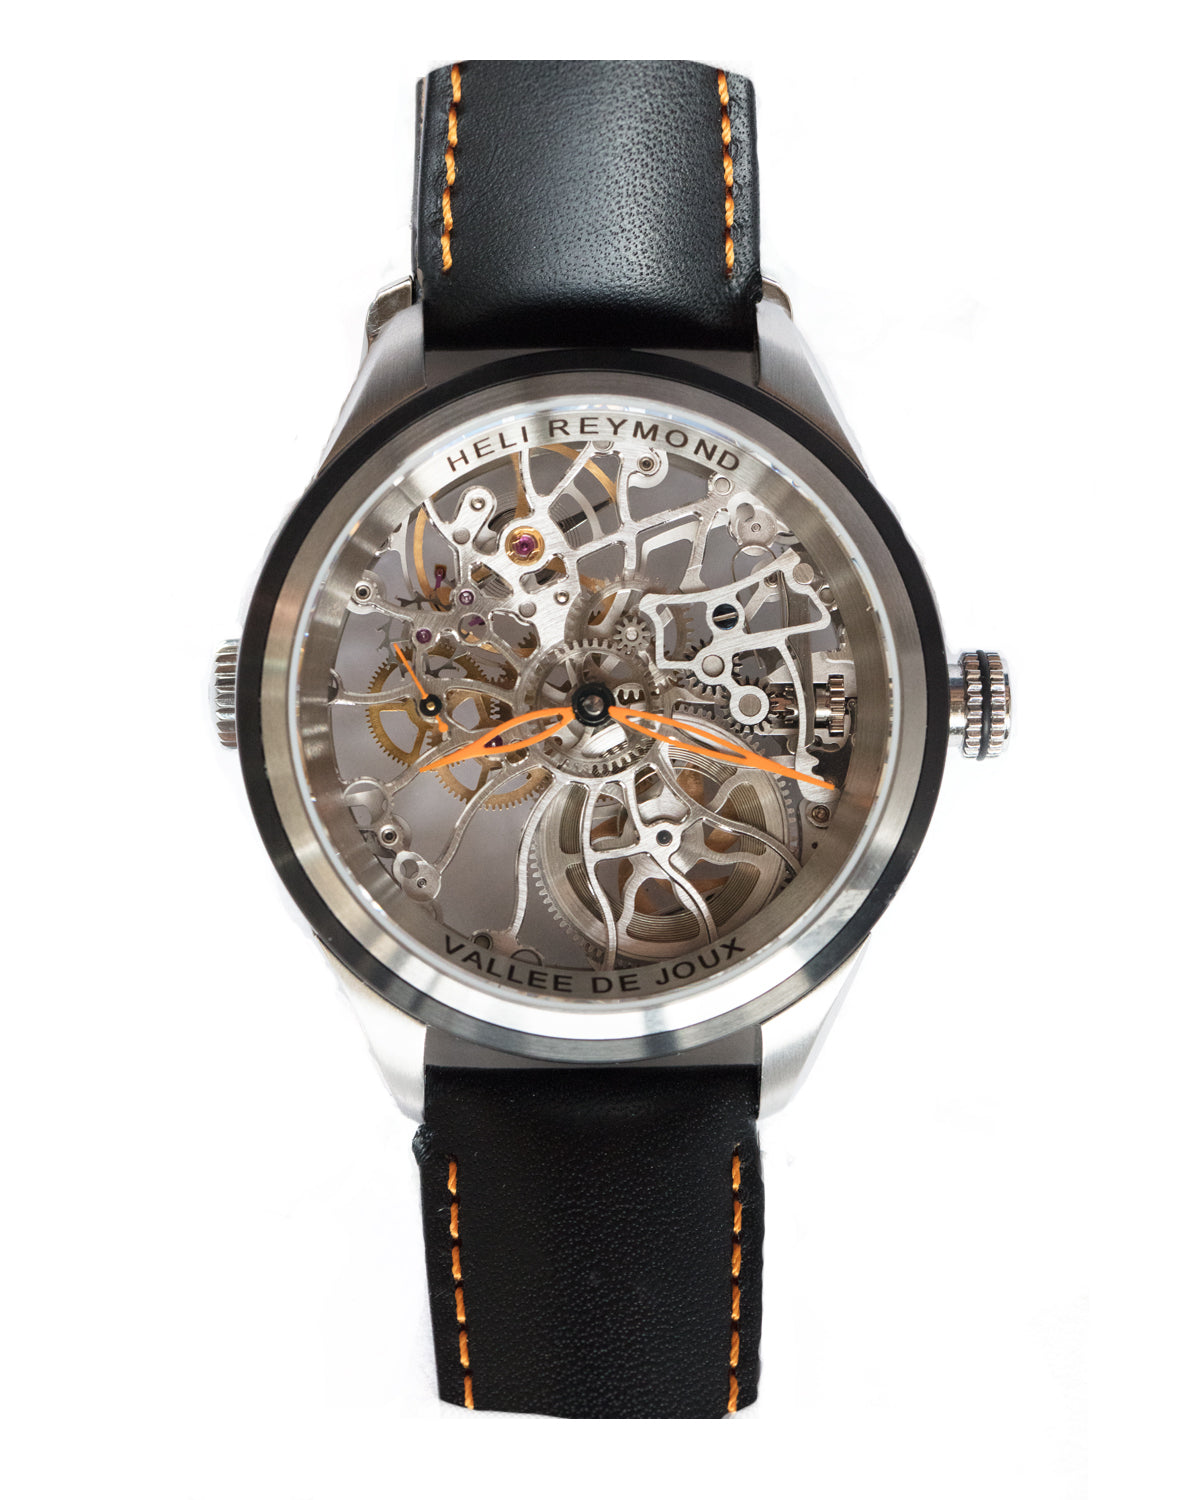 Heli Reymond Orange Hands Skeleton Watch T5010 Stainless Design Front Pic Bitcoin